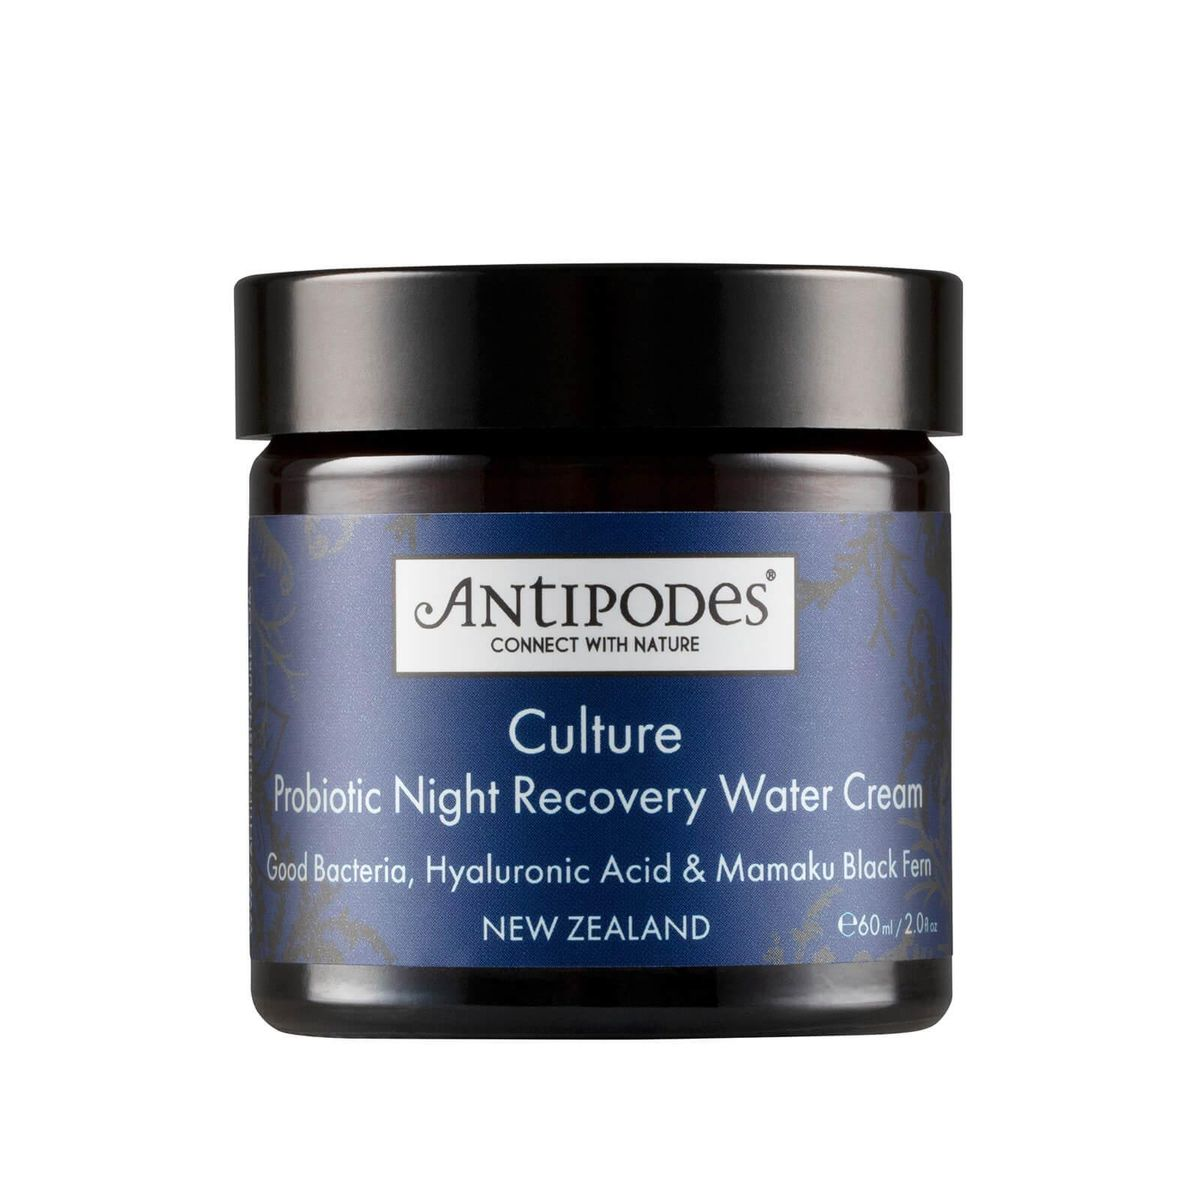 antipodes culture probiotic night recovery water cream